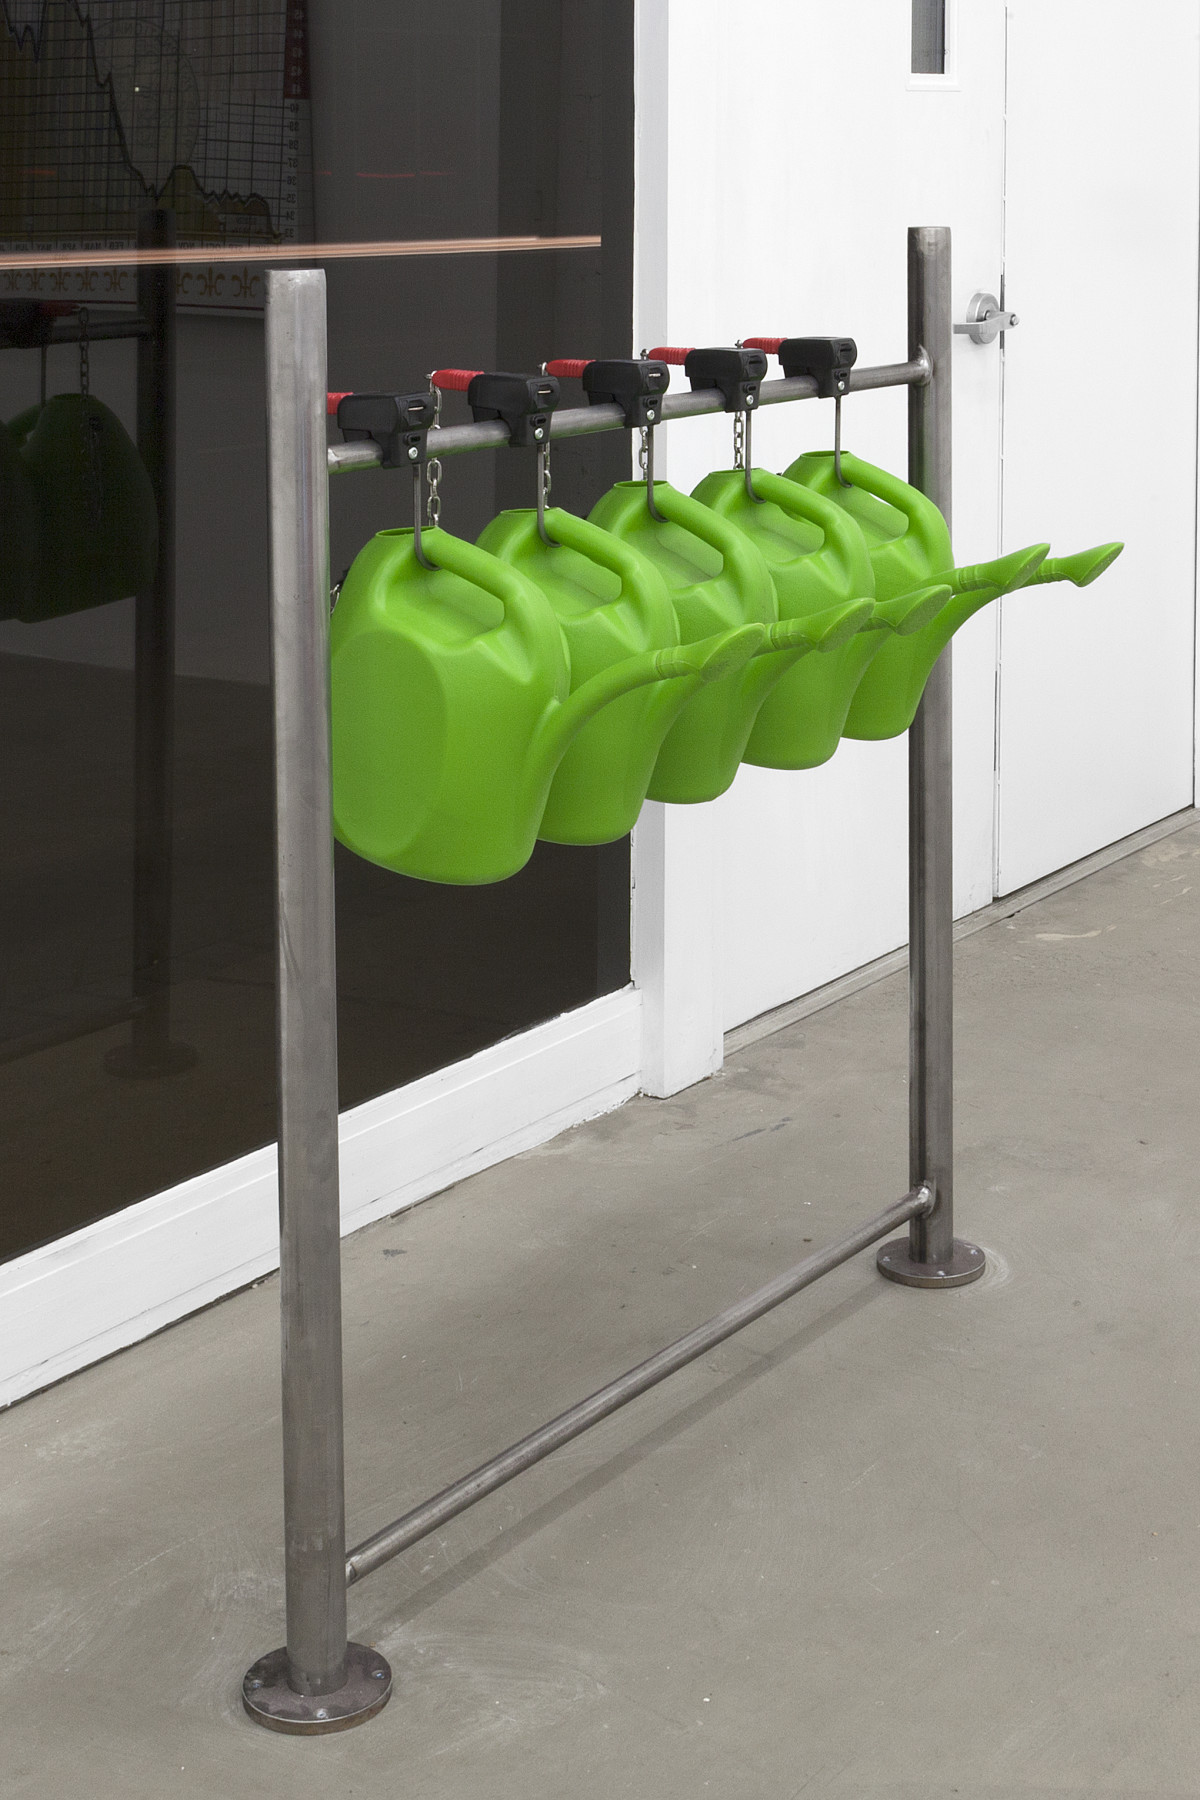 3.CC_Miles_Huston_Public_Watering_Can_Station